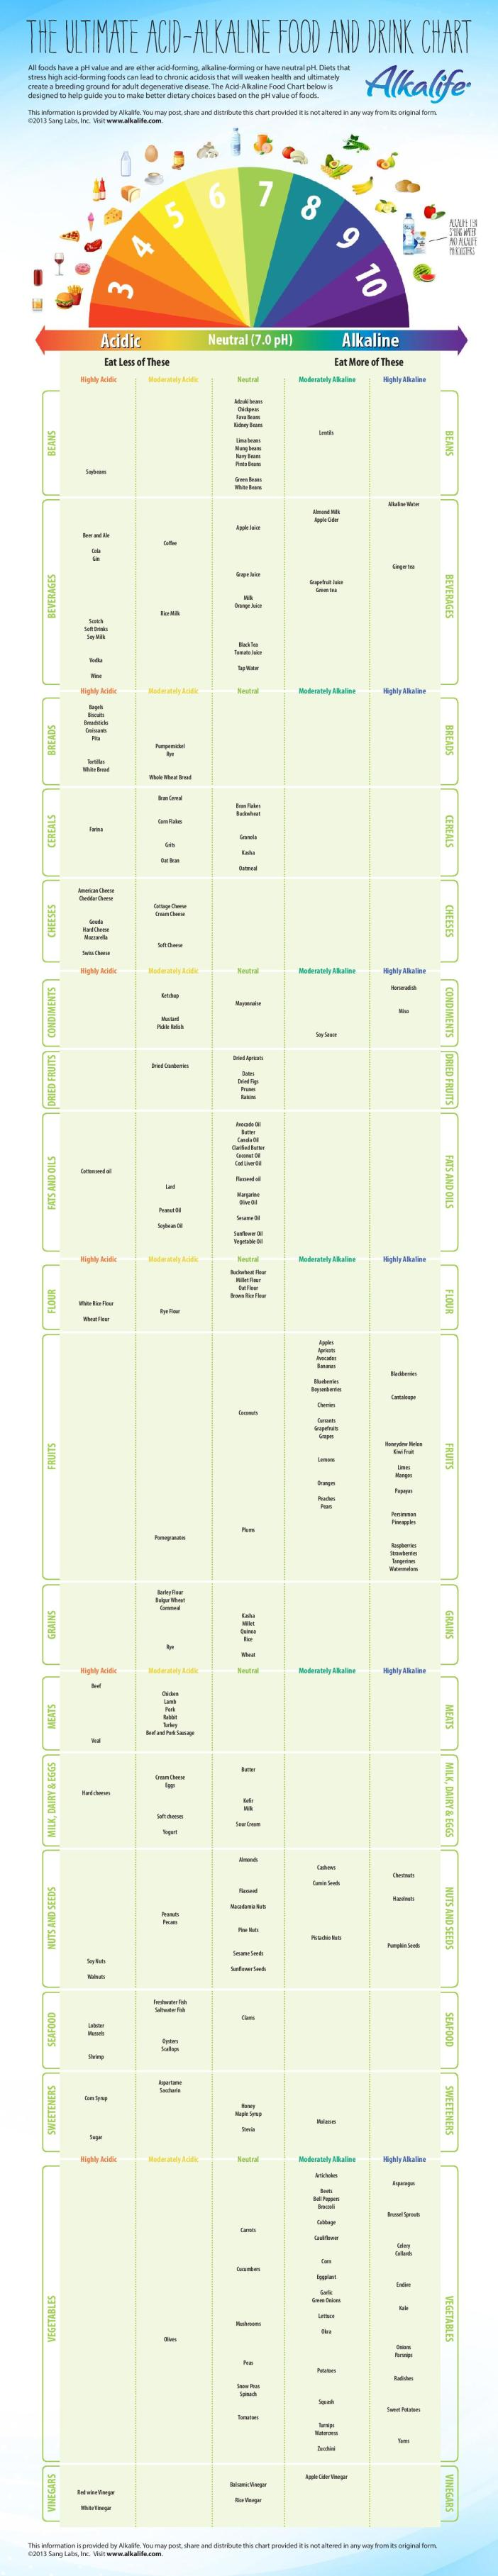 Acid-Alkaline-Food-Chart-ph-Balance-Alkalife-page-001.jpg